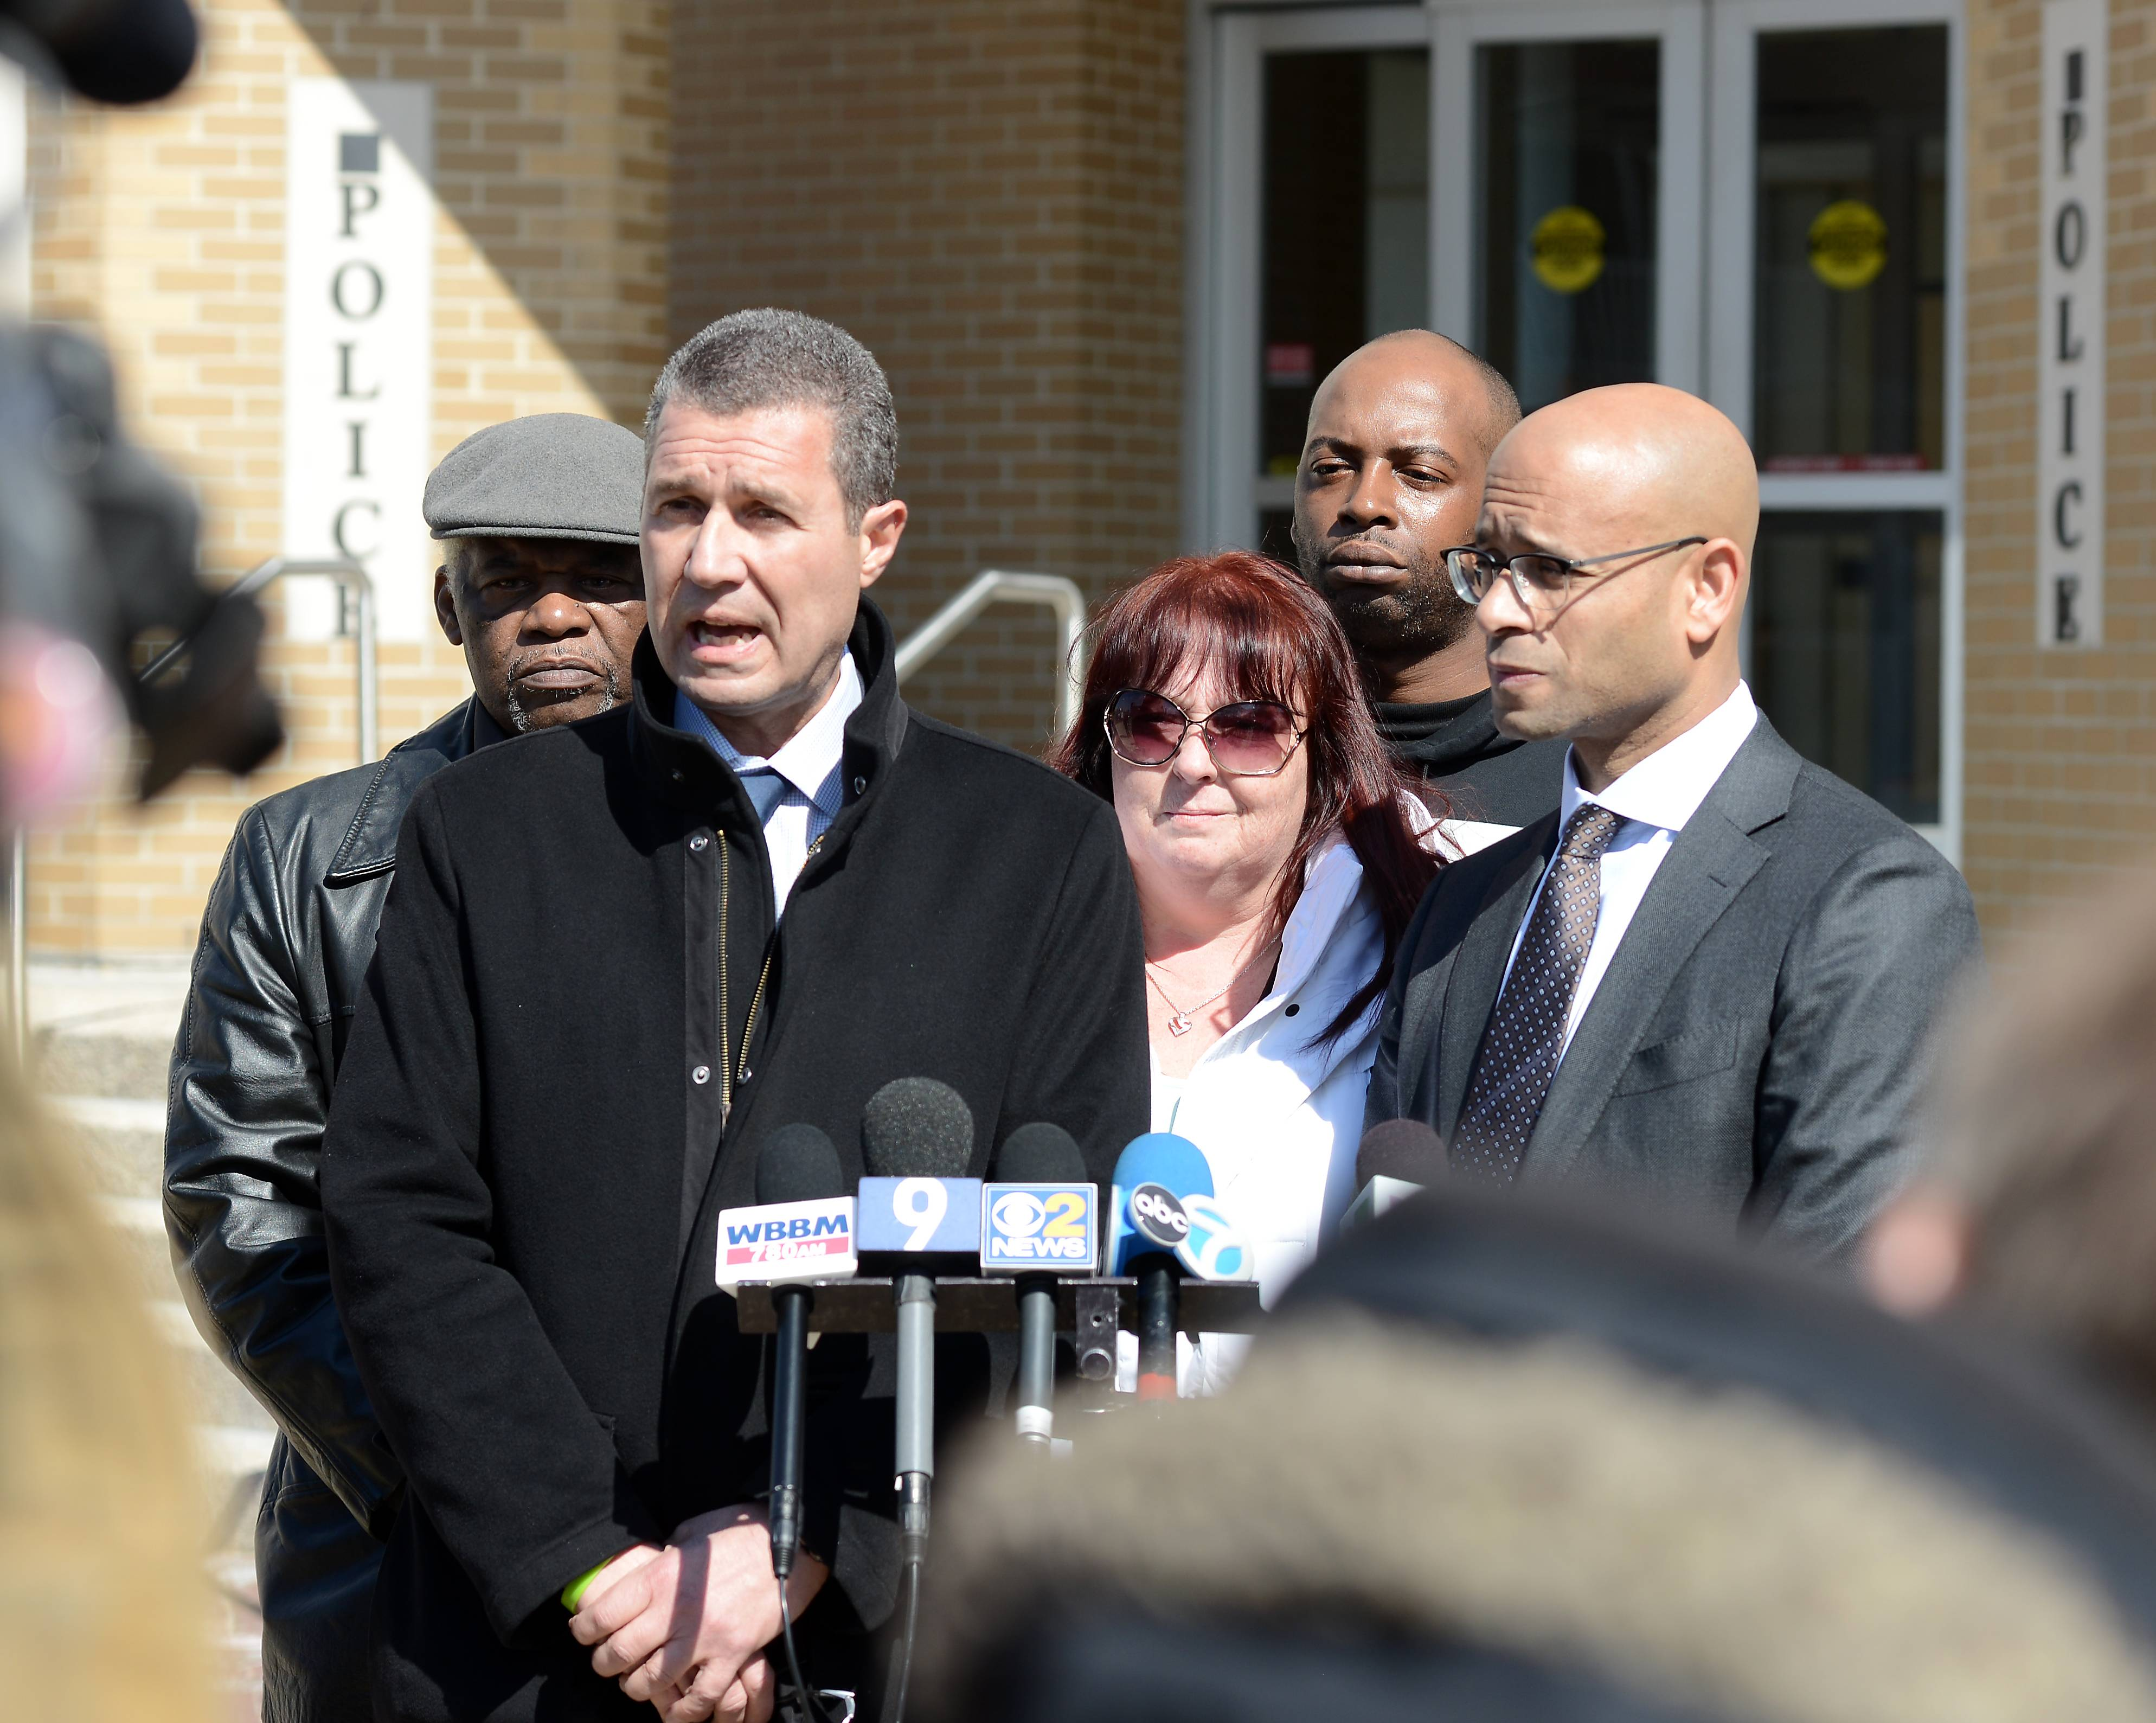 Attorneys: Lawsuit to be filed against Elgin cop over deadly shooting